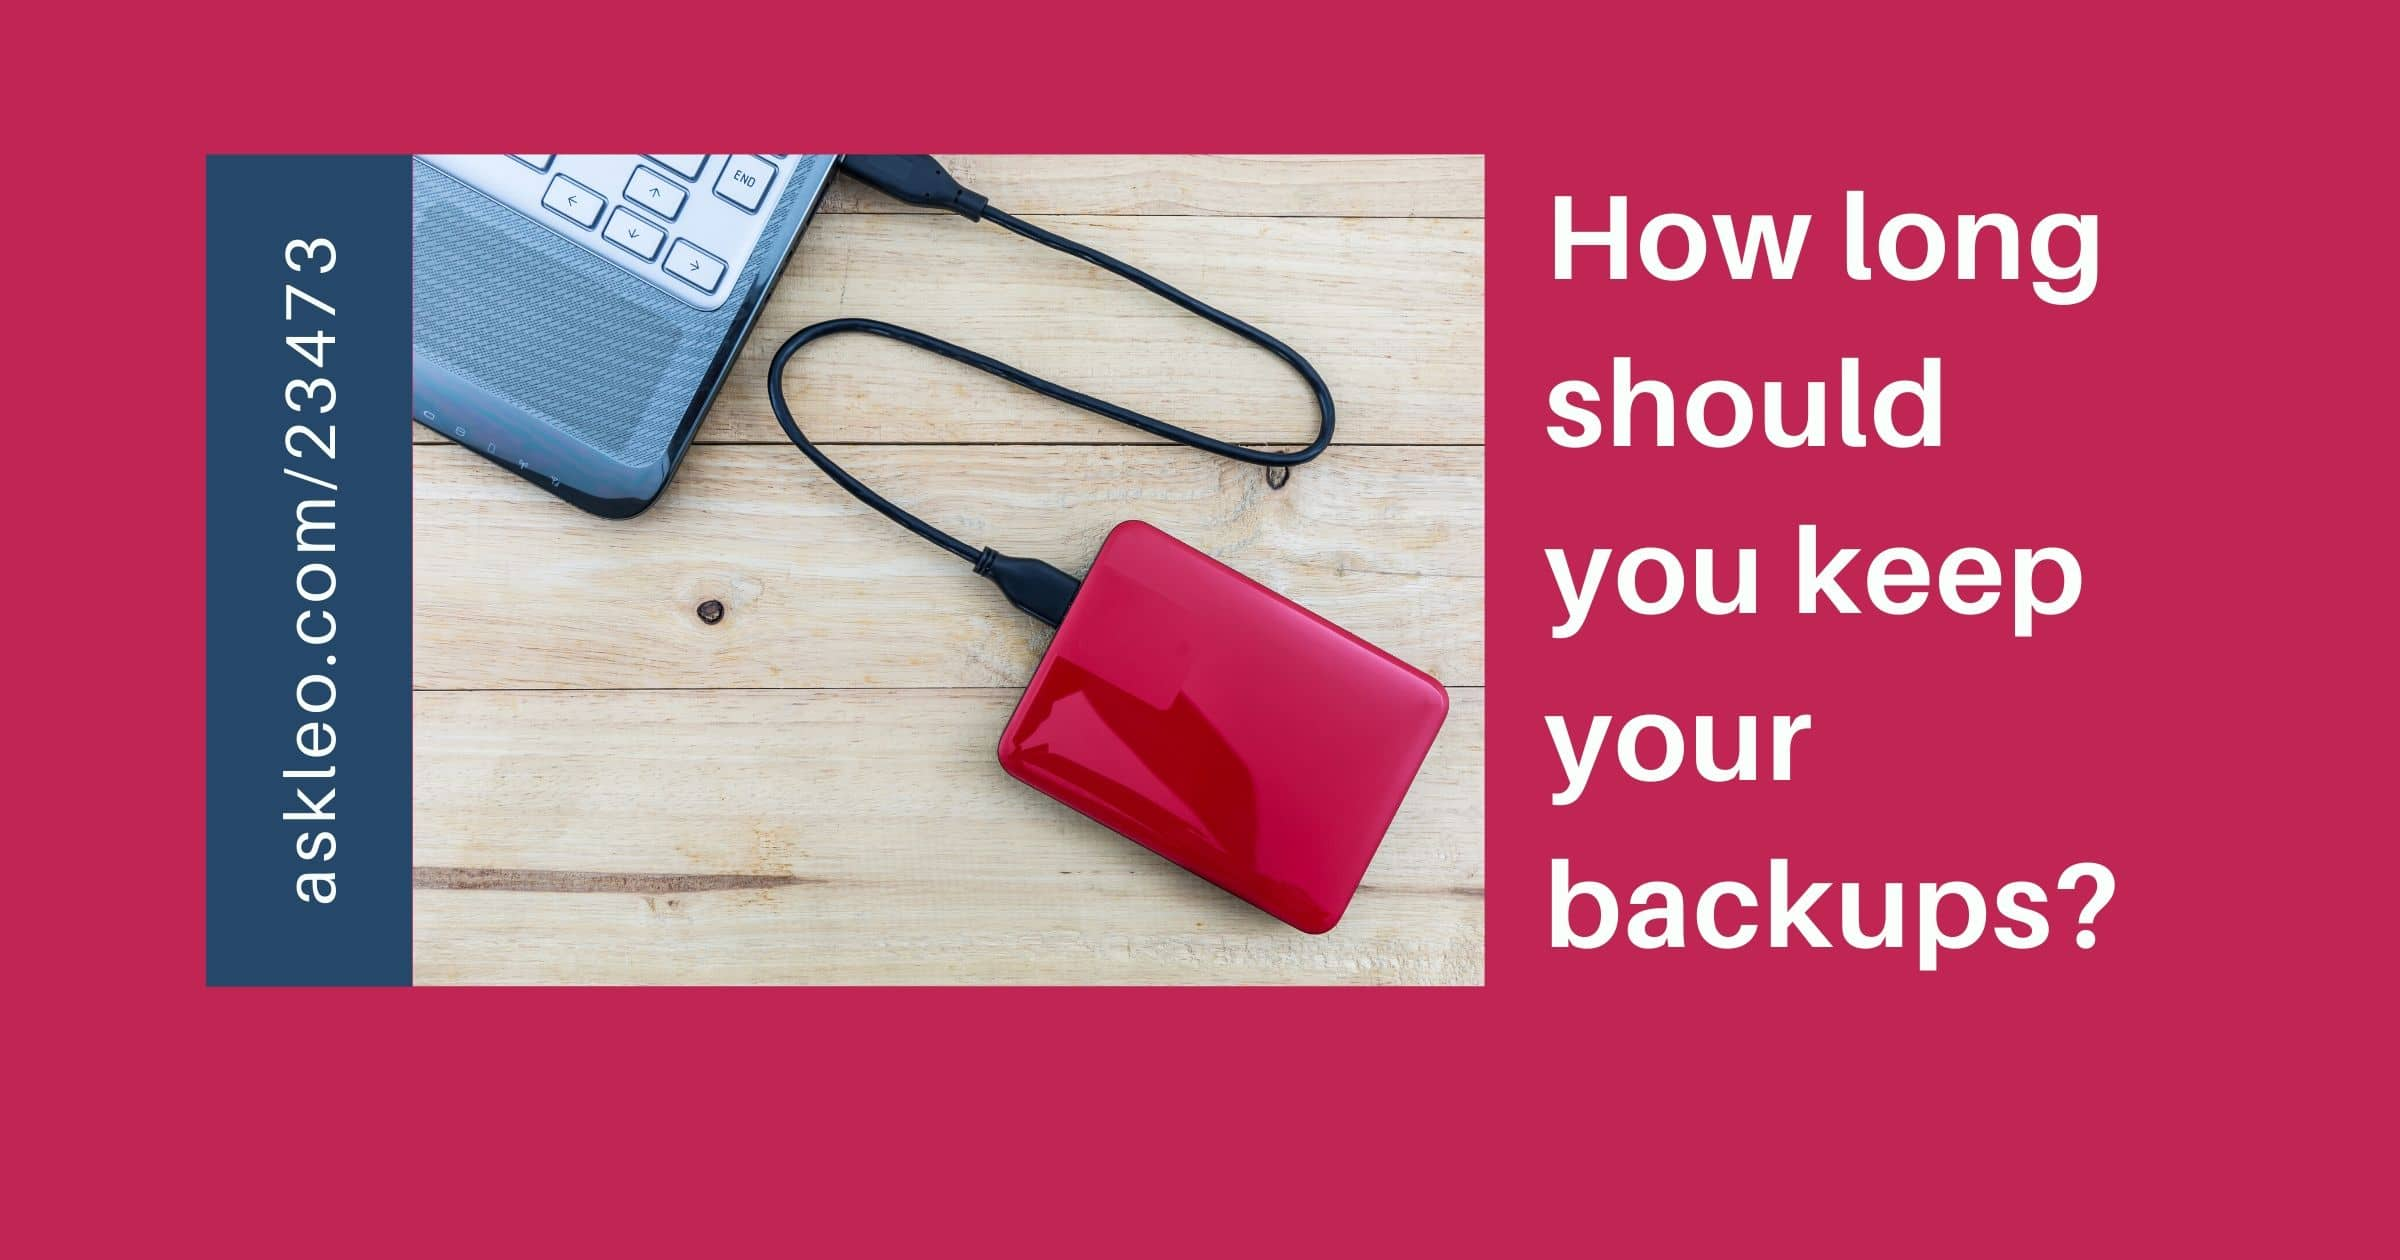 How Long Should I Keep My Backups?